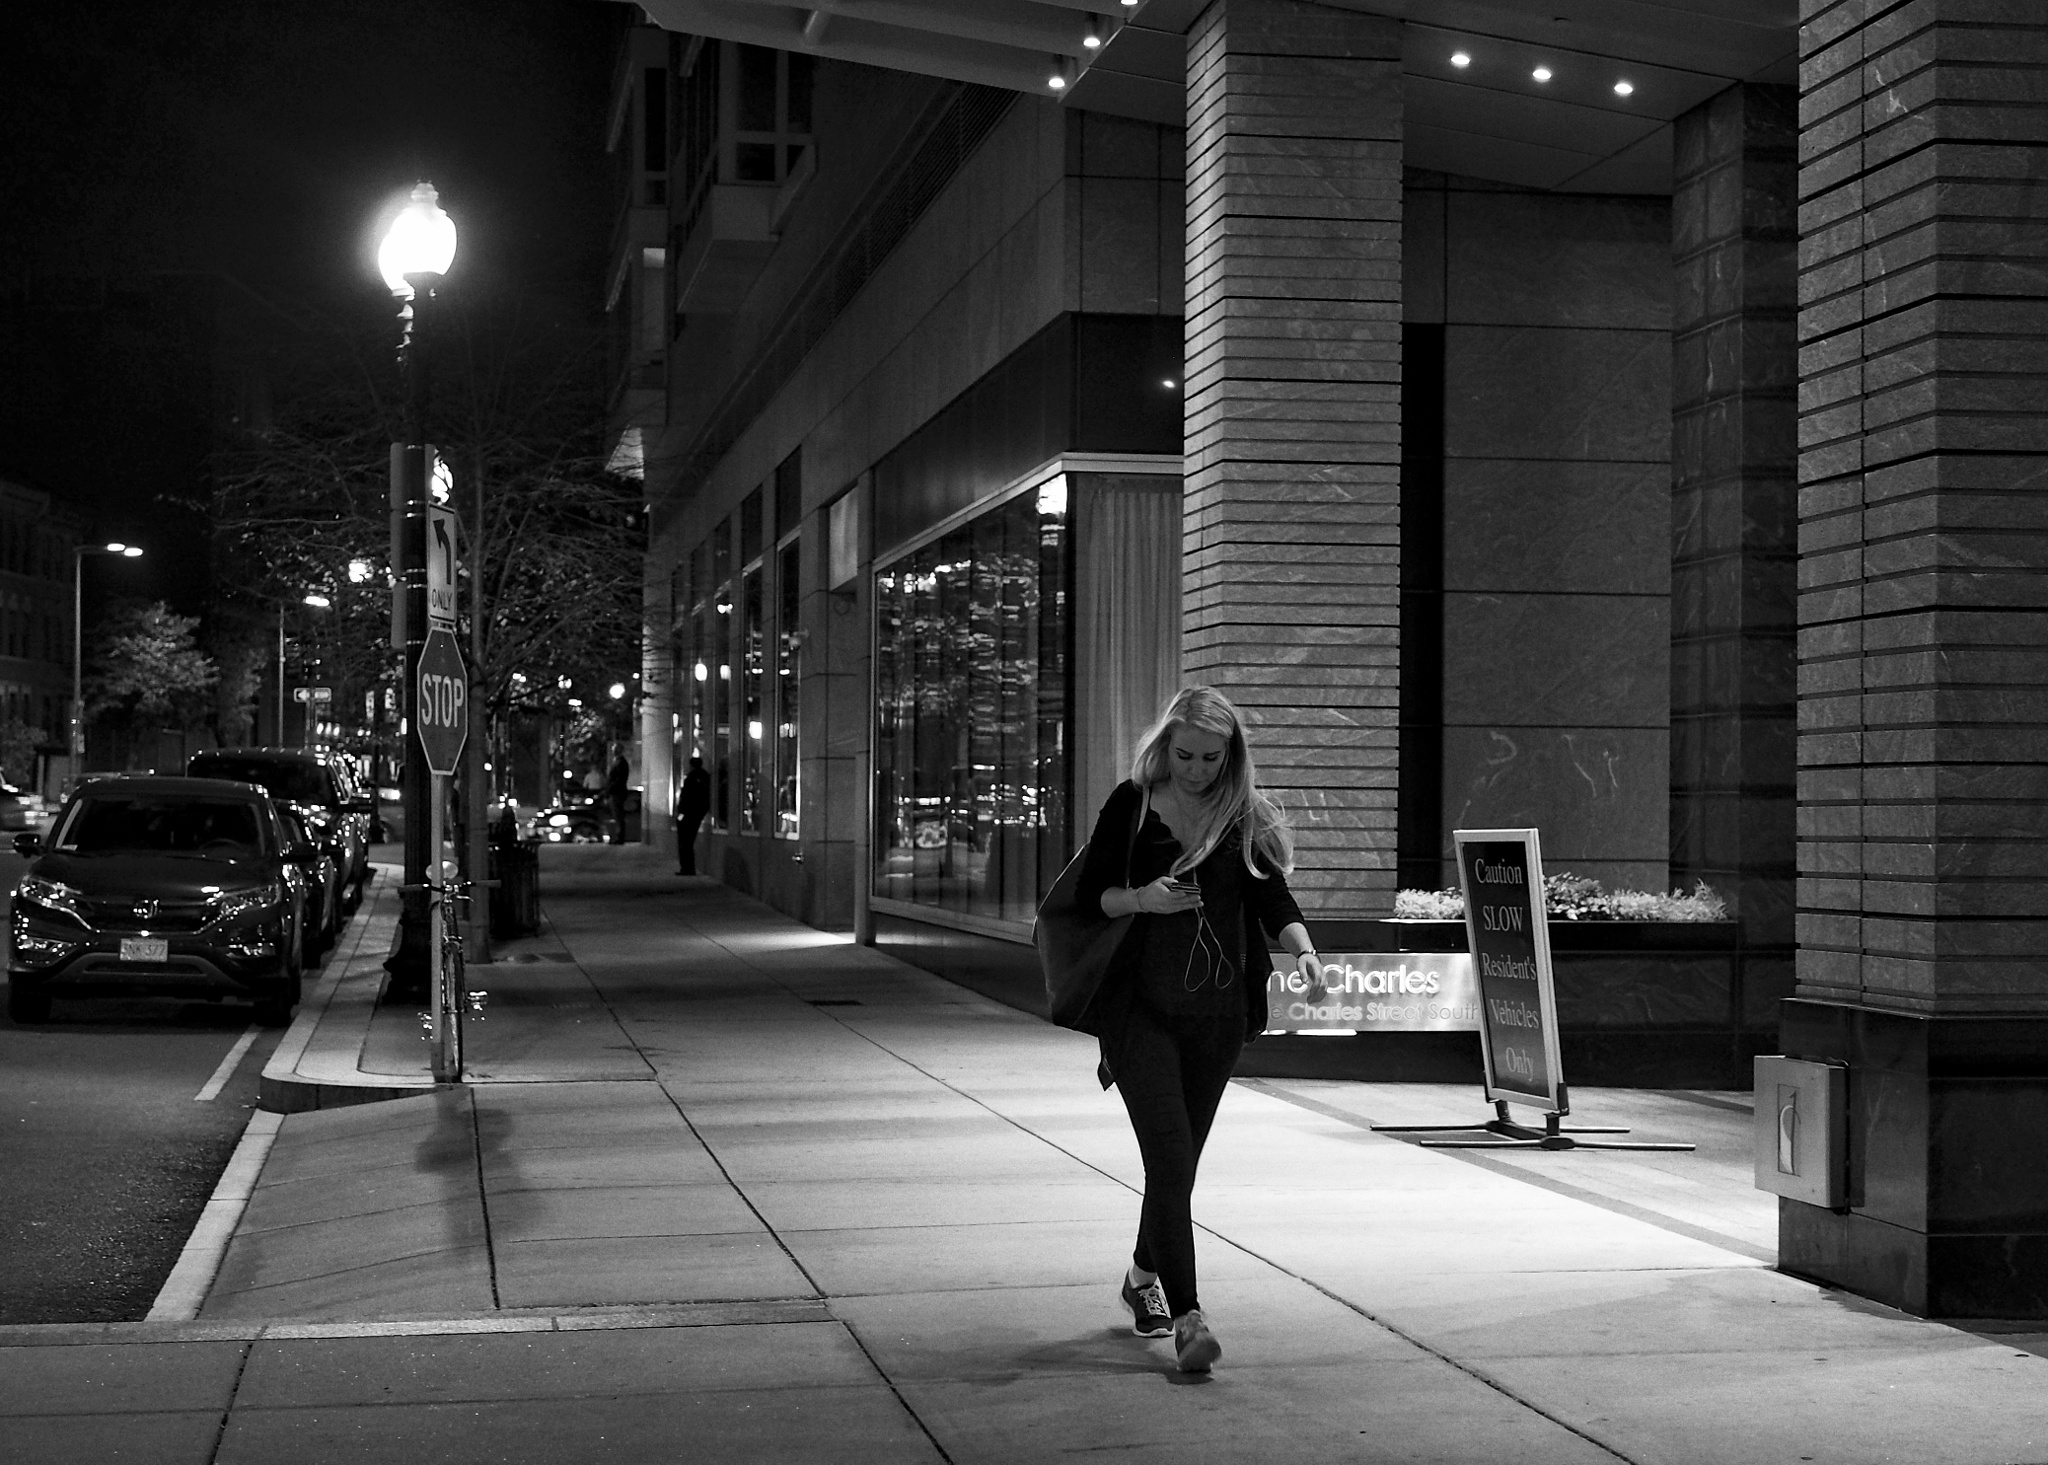 Hunting for people without phones :-) by Philip S.